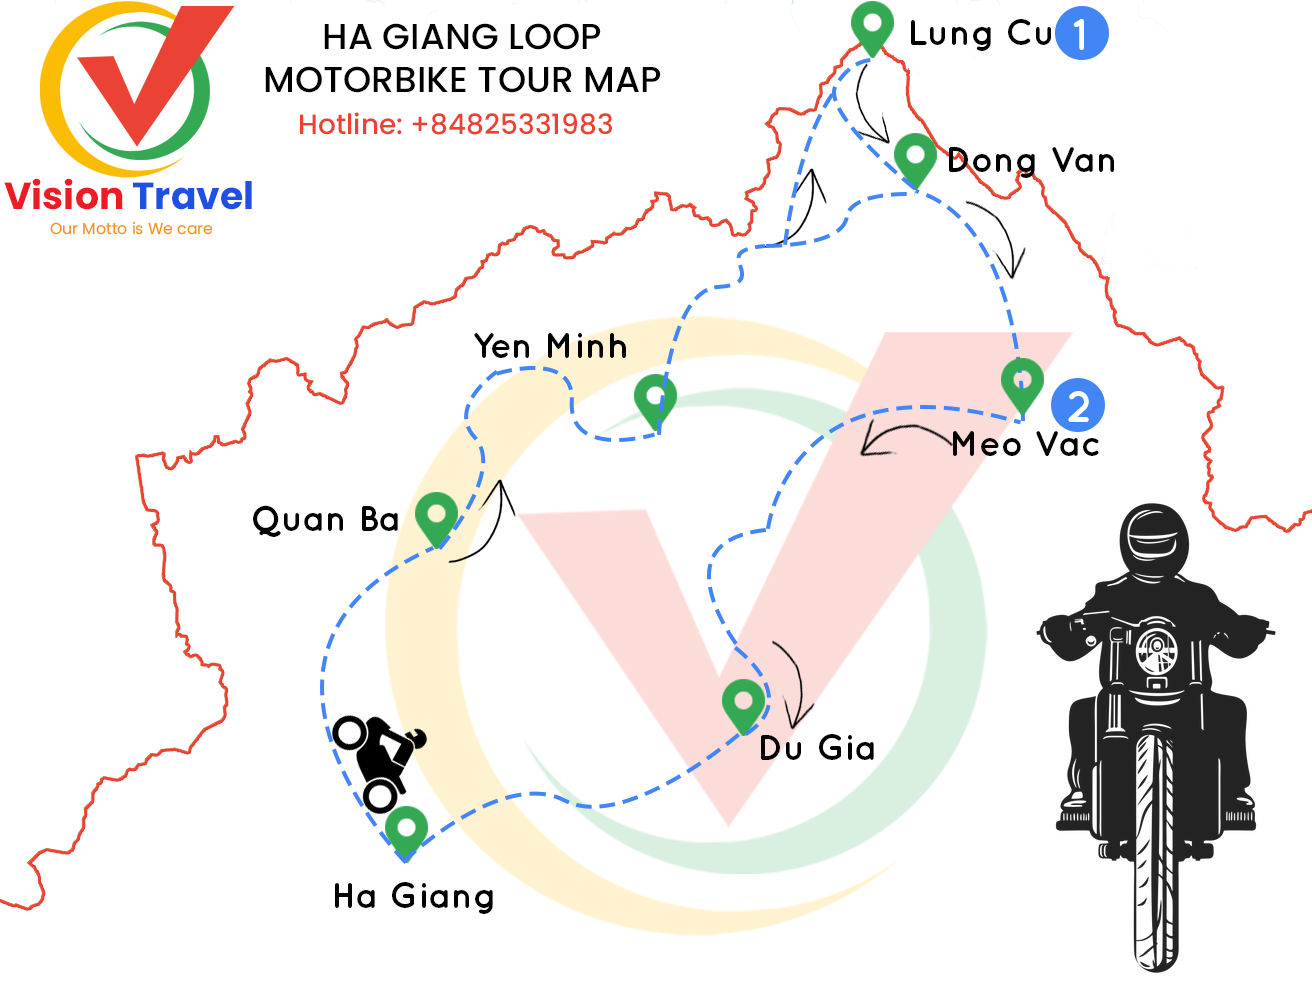 Ha Giang Loop Map - Vision Travel